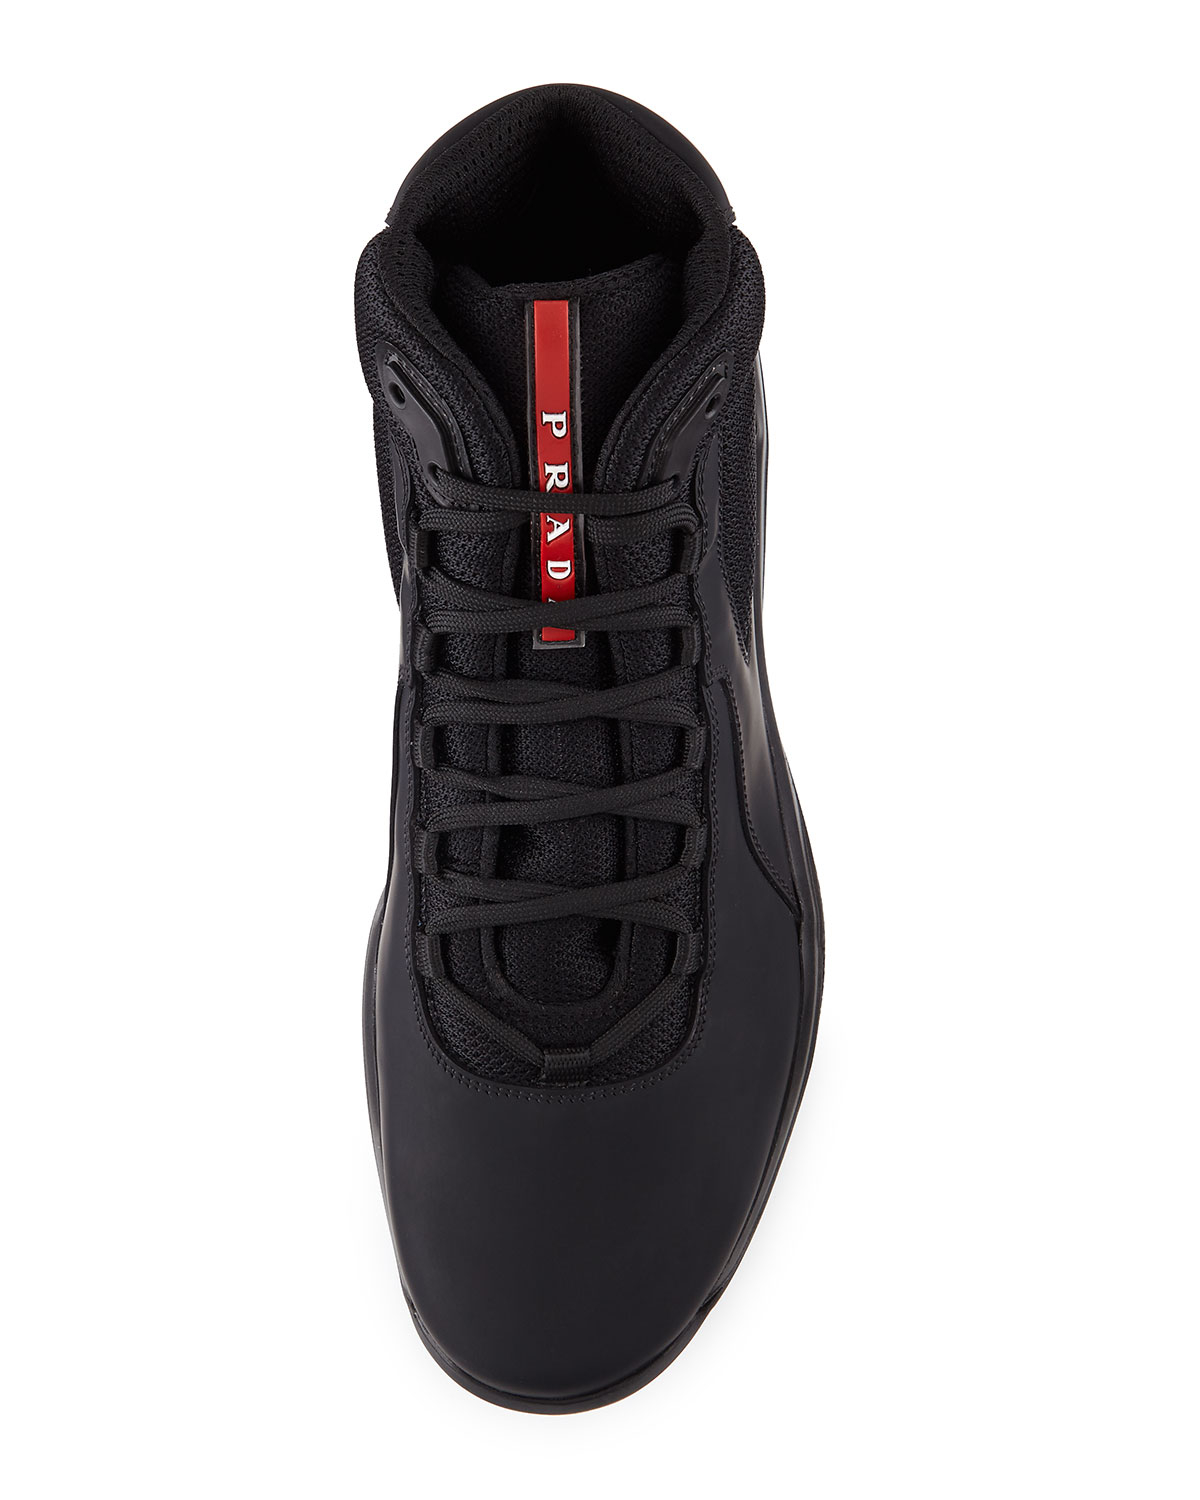 Lyst - Prada America s Cup High-Top Sneakers in Black for Men 0050902ed836